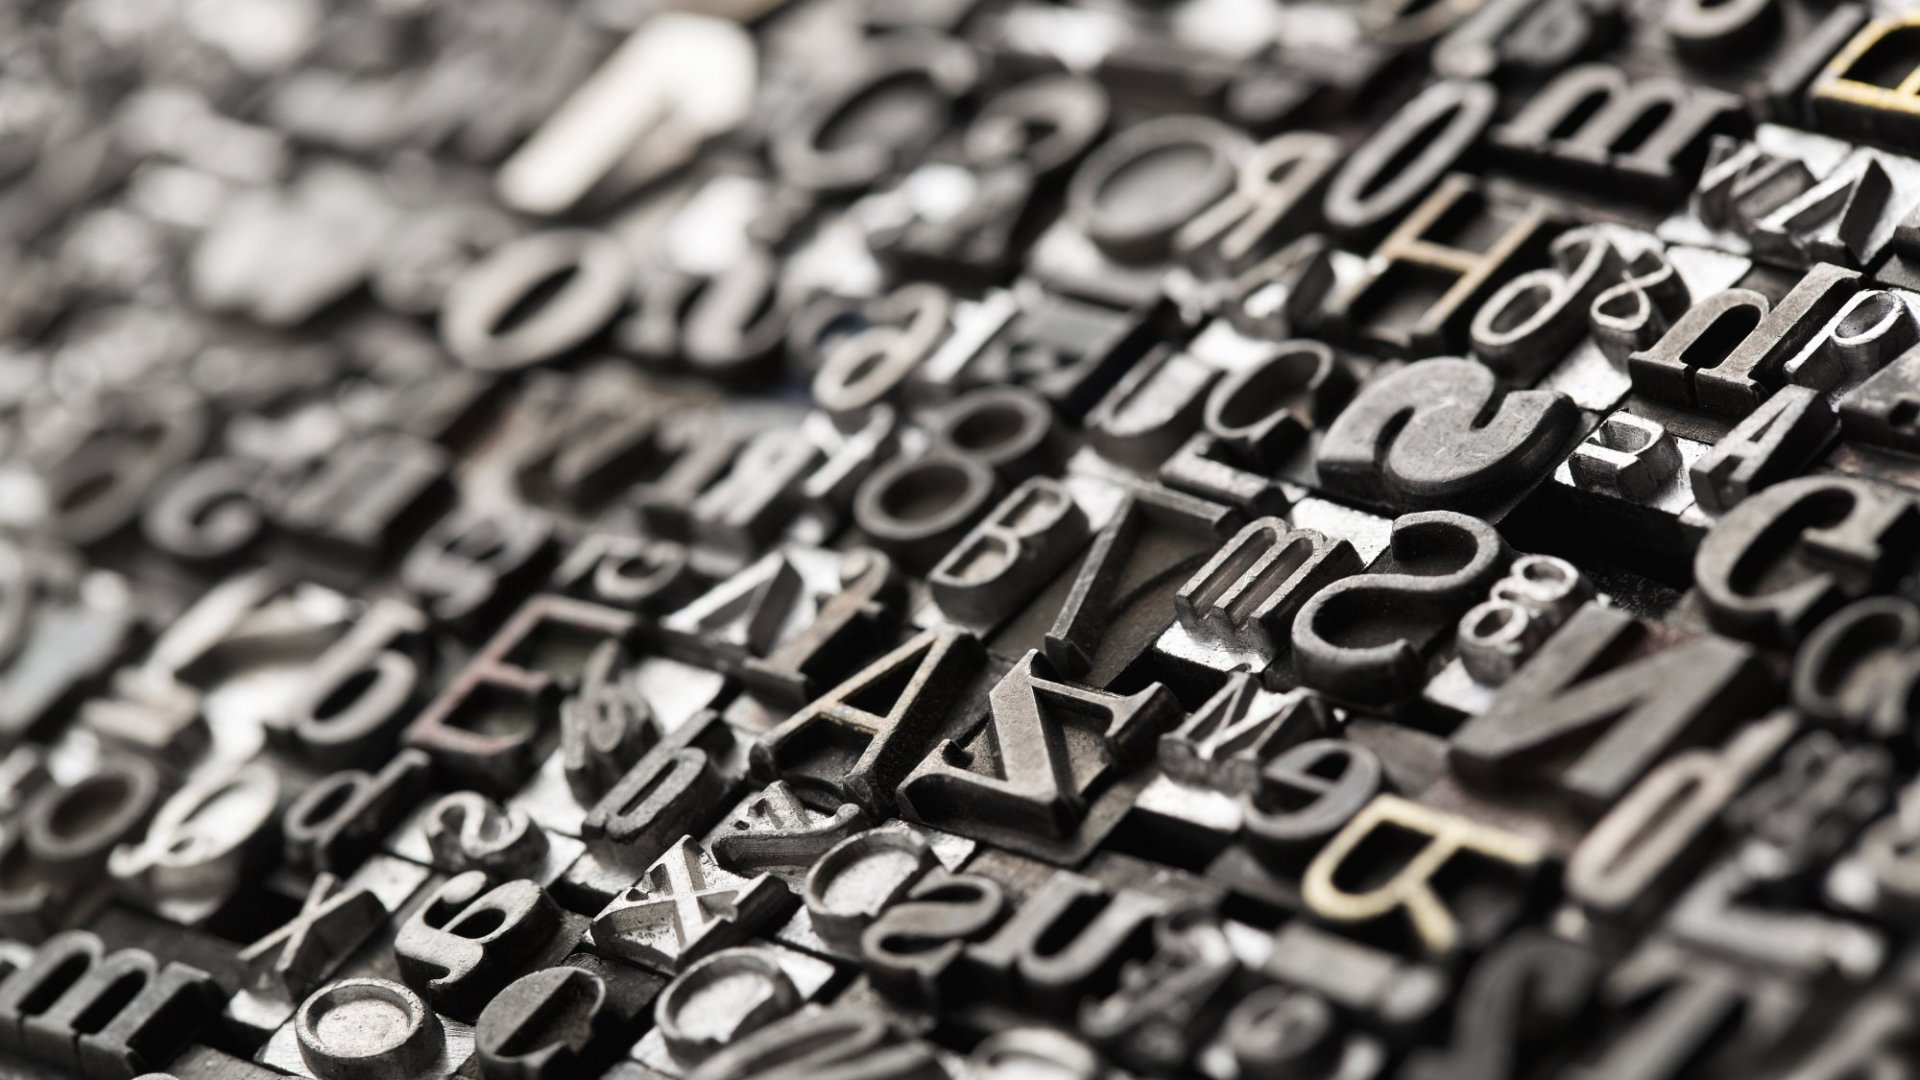 Get This: The Font Of All Creativity Has Actually Been Captured In A New Font